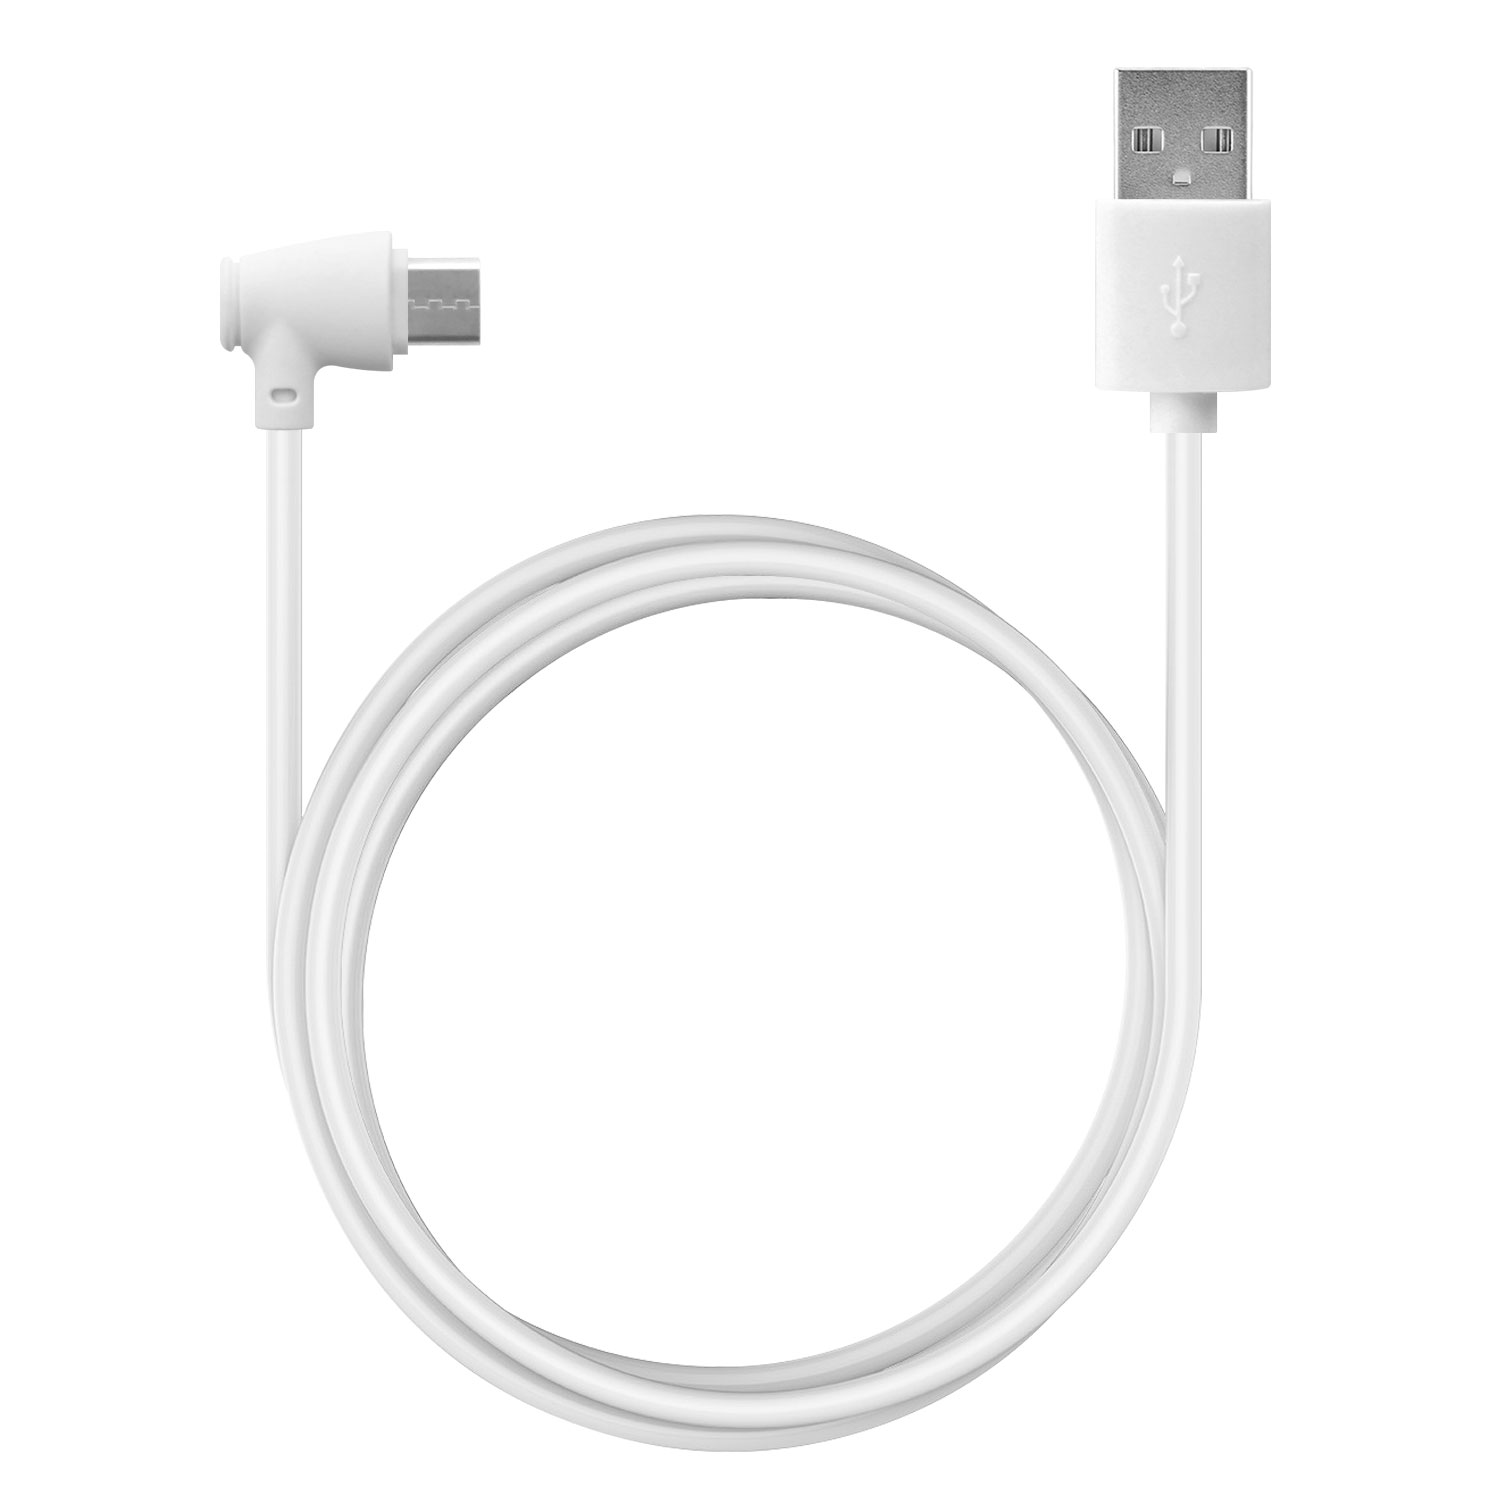 Samsung Galaxy S9 Plus USB Type-C To USB Type-A Data Charging Cable White 3.3ft Angled